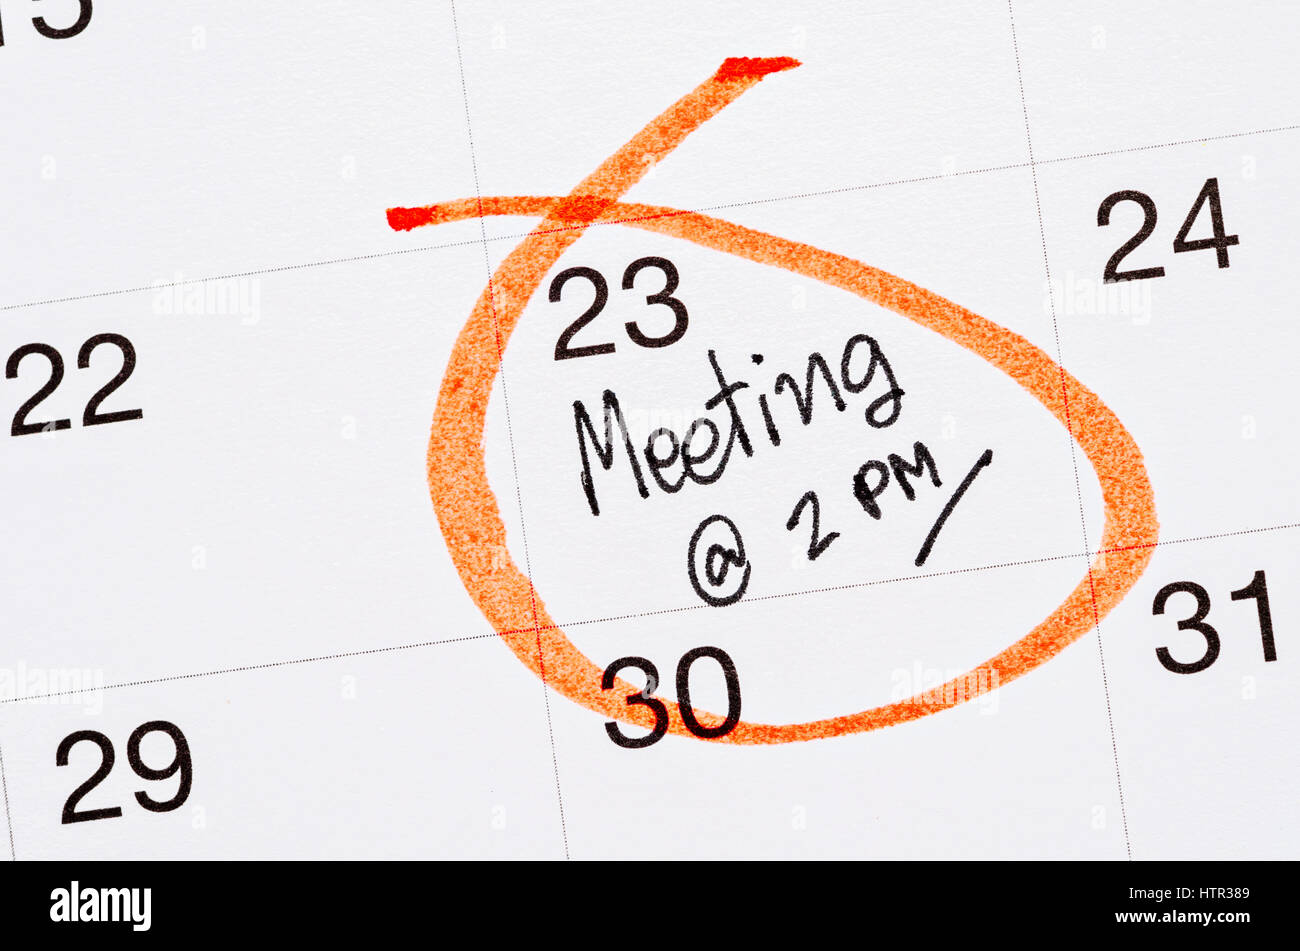 Meeting appointment written in a calendar page - Stock Image